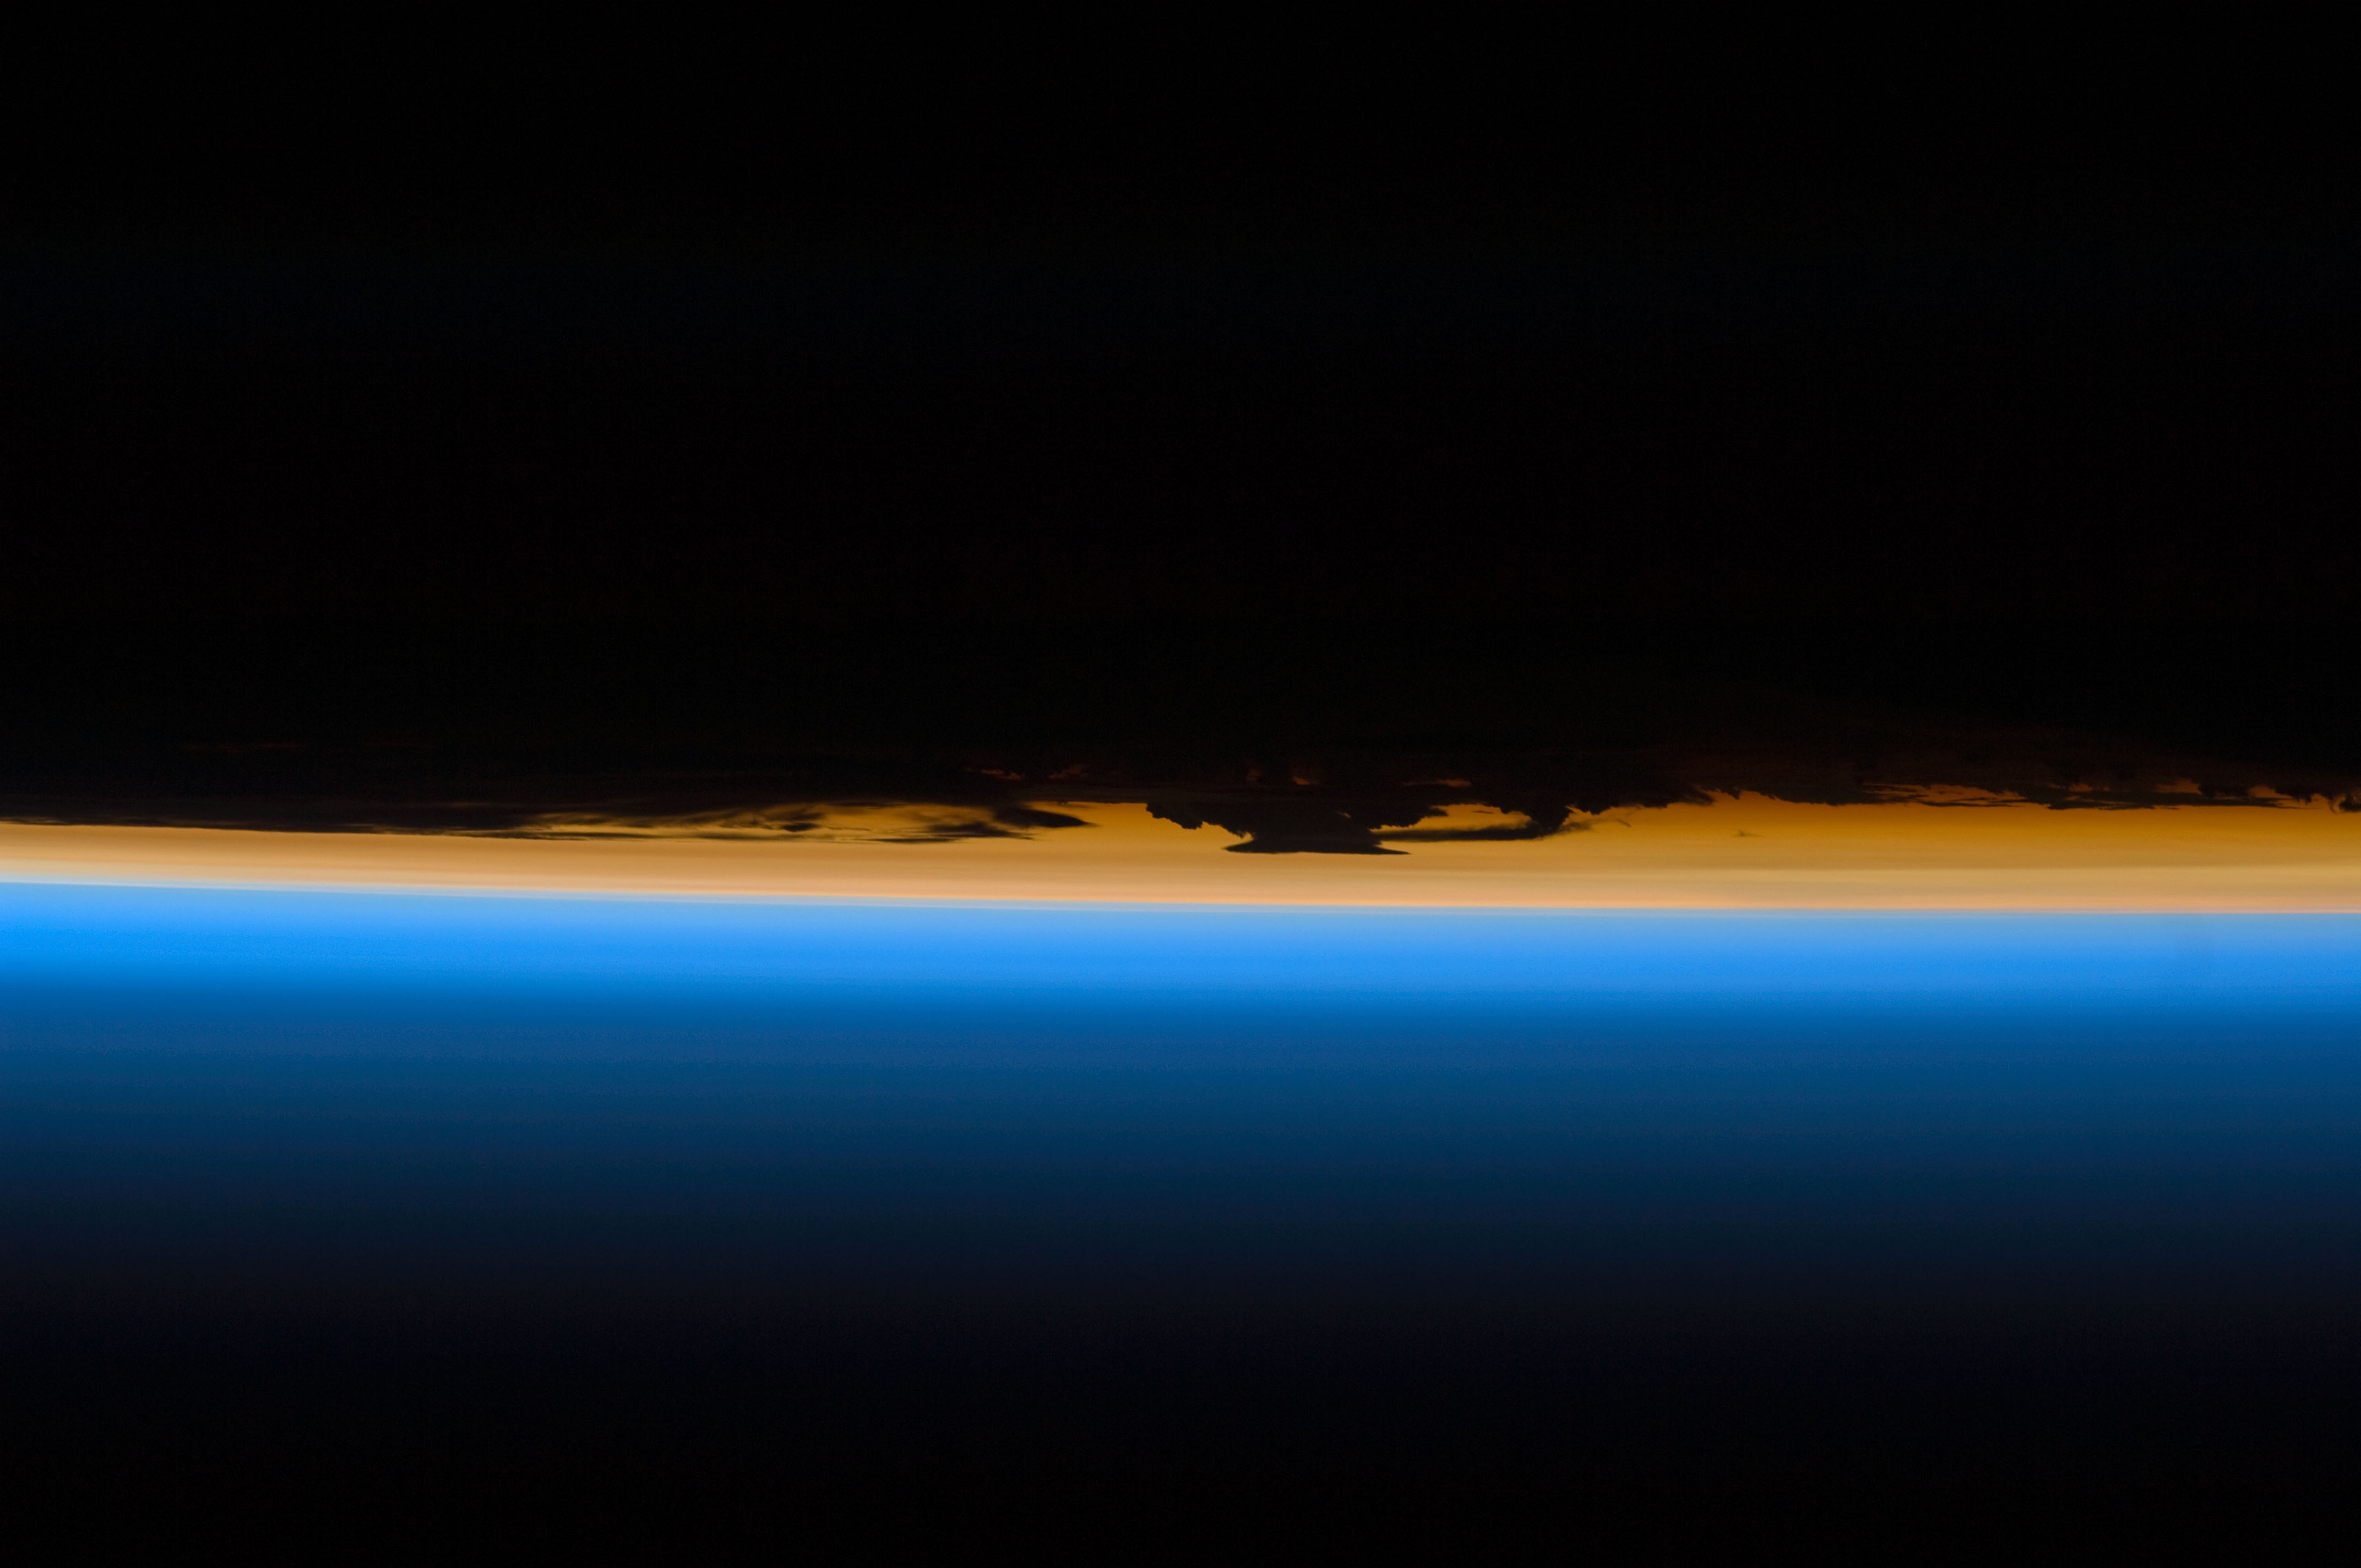 nasa earth atmosphere space - photo #26